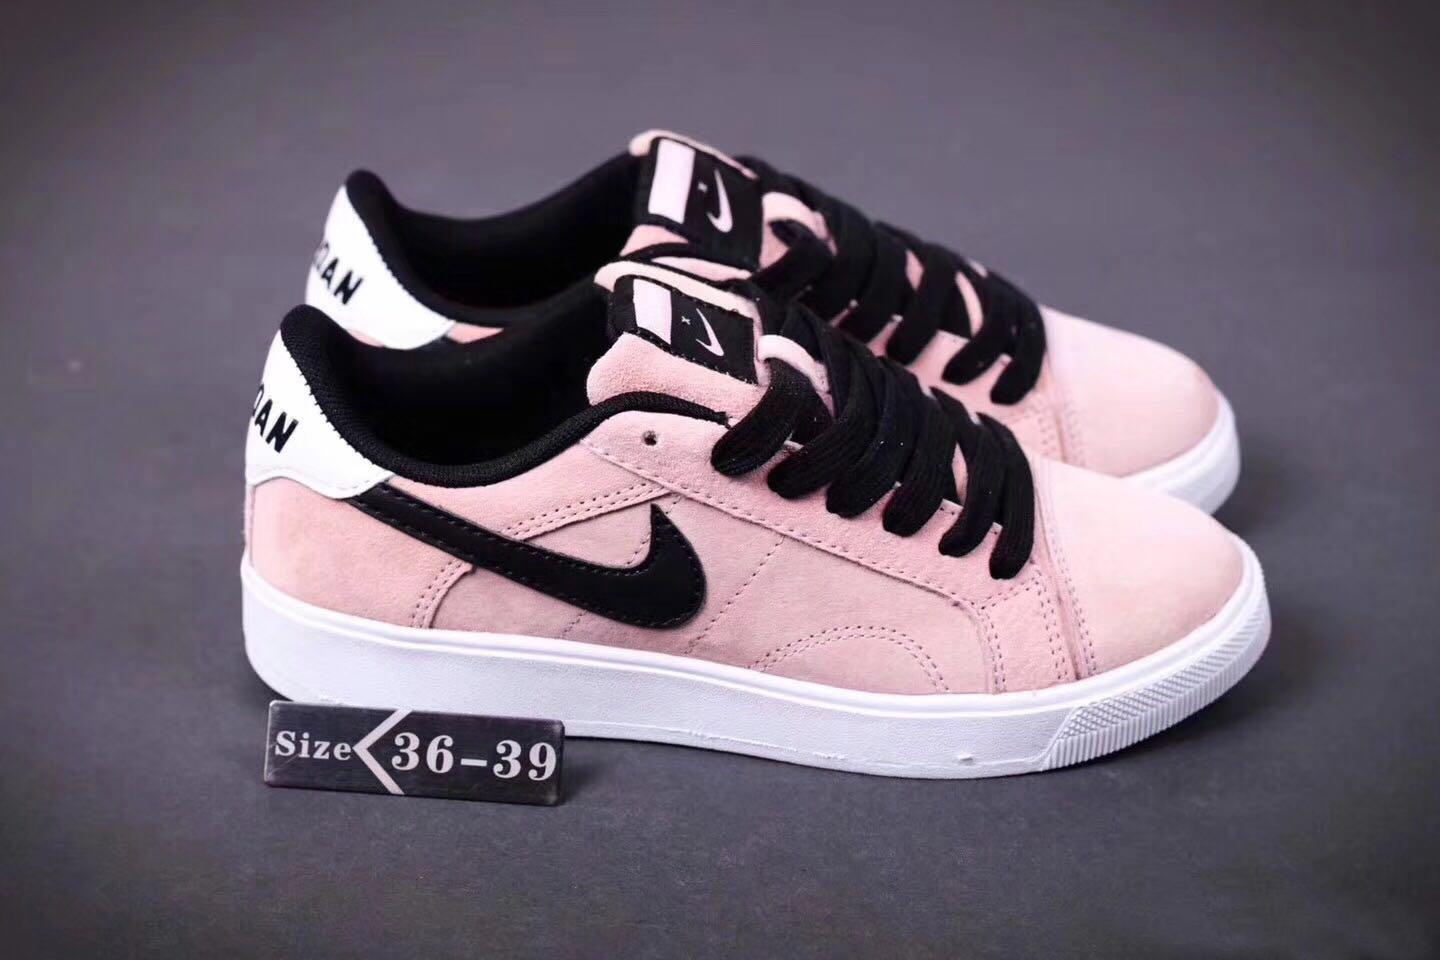 2017 Air Jordan 1 Low New Year Pink Black Shoes For Women